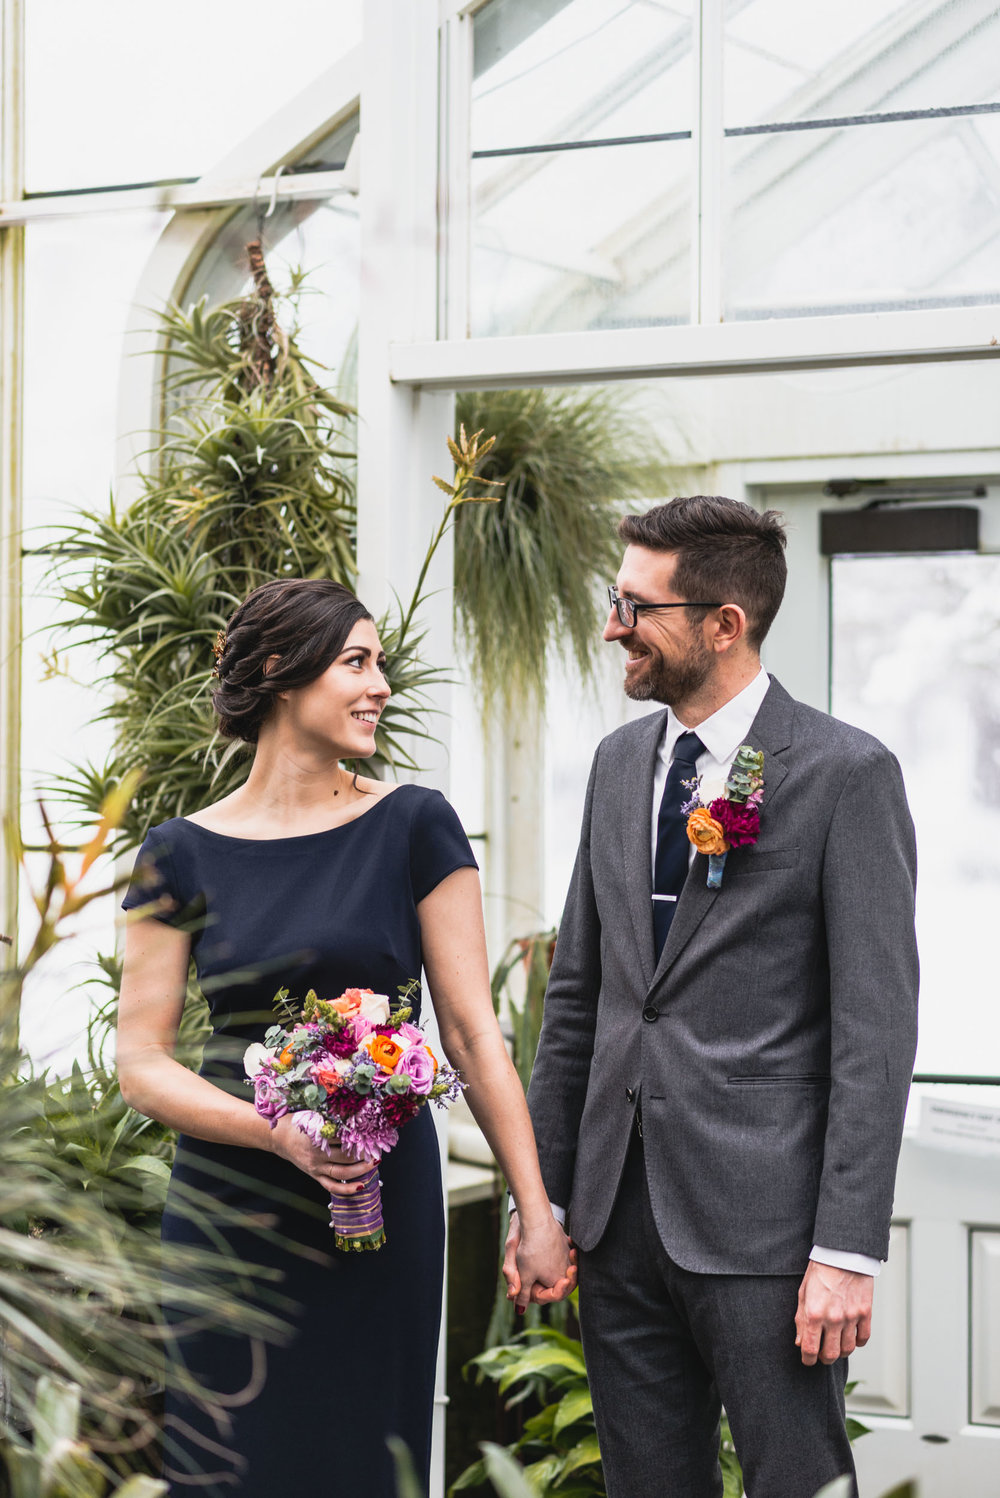 Bride and groom hold hands among plants